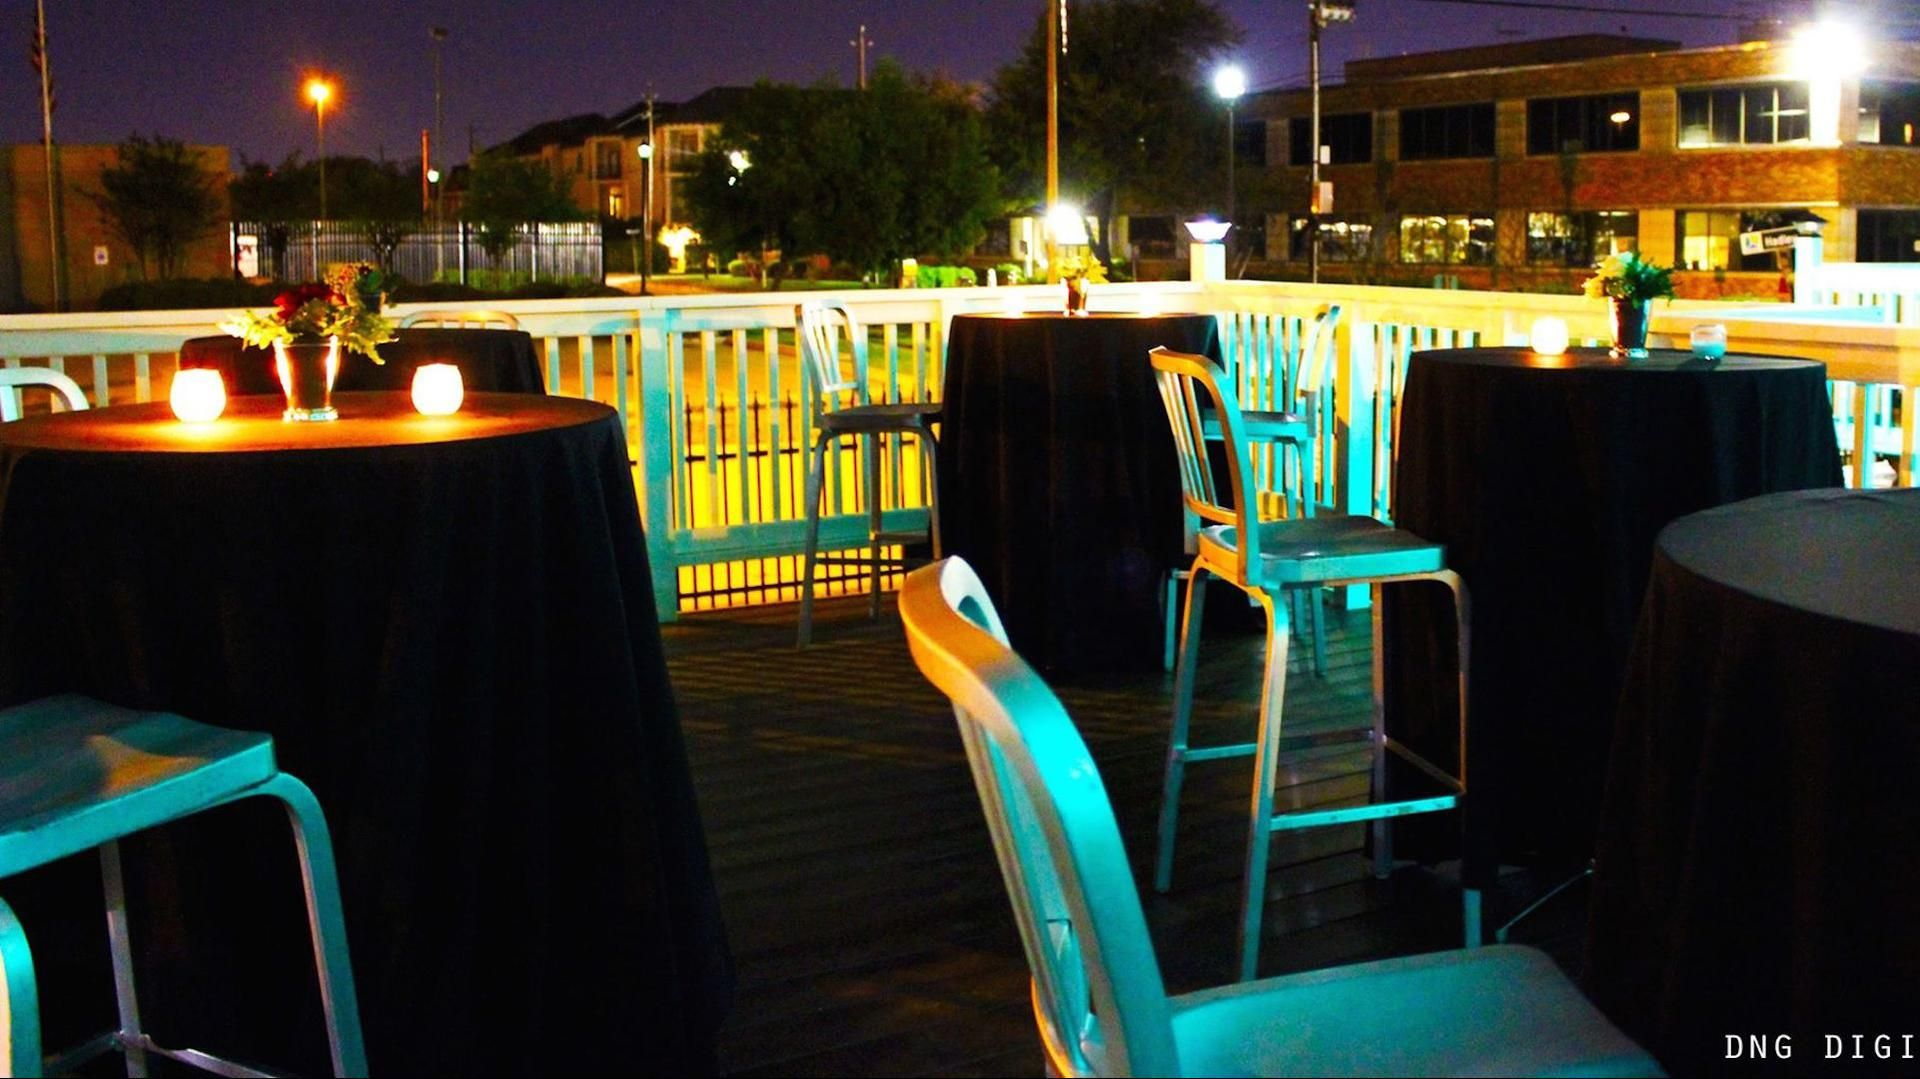 Event Space Banquet Hall in Houston Texas Celebrate with style